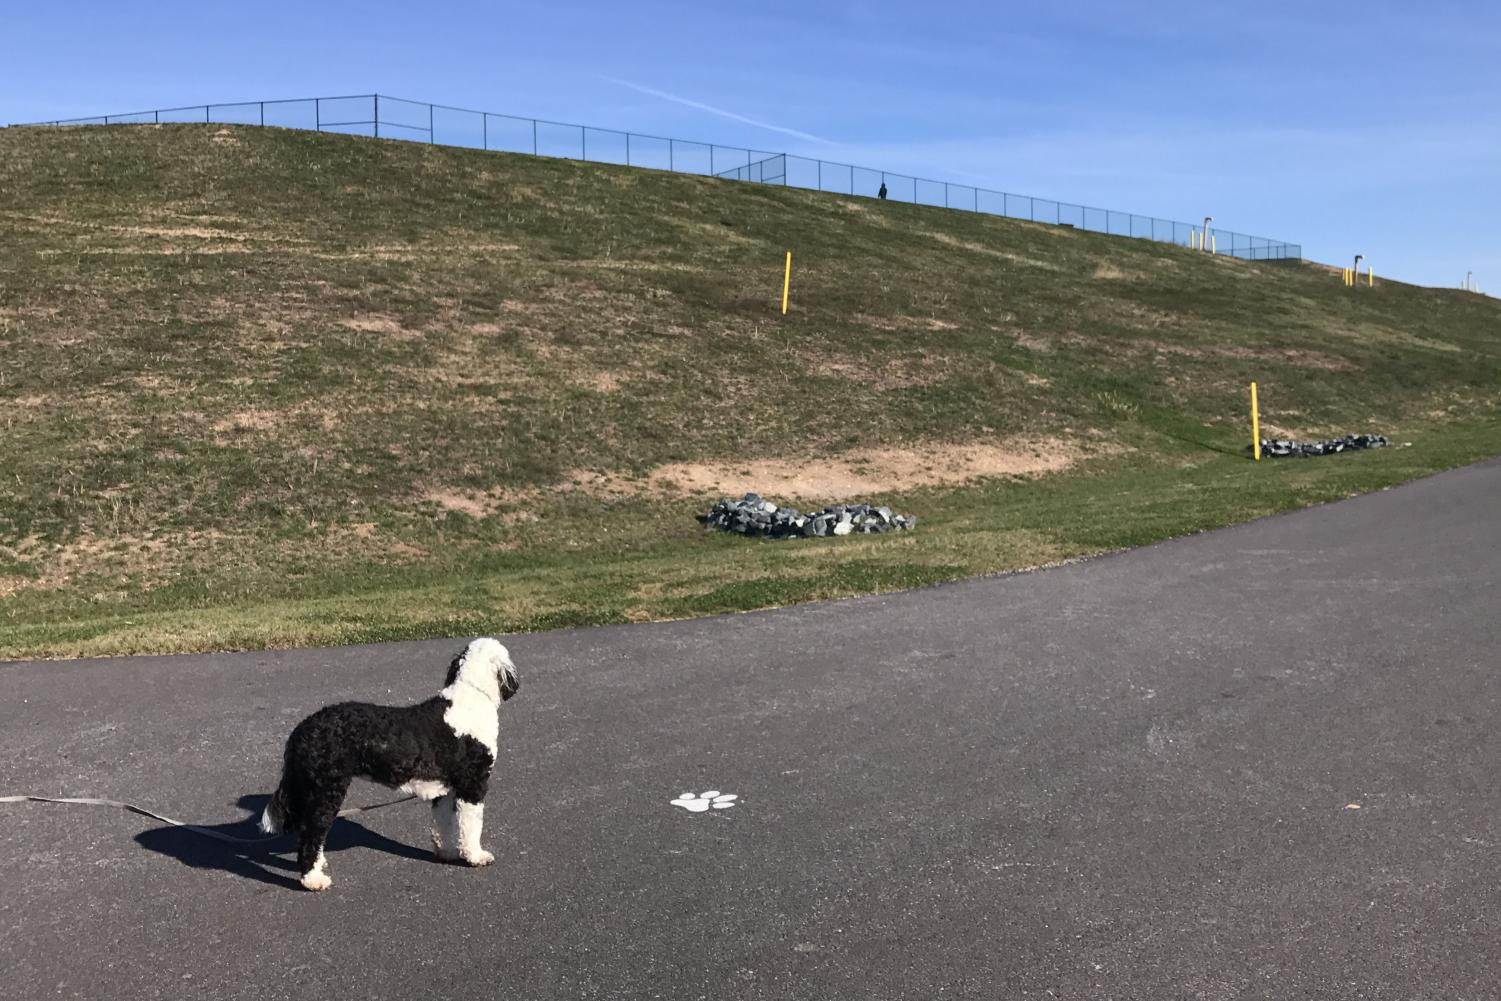 Wembley Becker longingly gazes up the hill towards the fenced-in dog park. The Abingdon Road Park officially opened in August 2017 and boasts many features, including a dog park and walking trail.